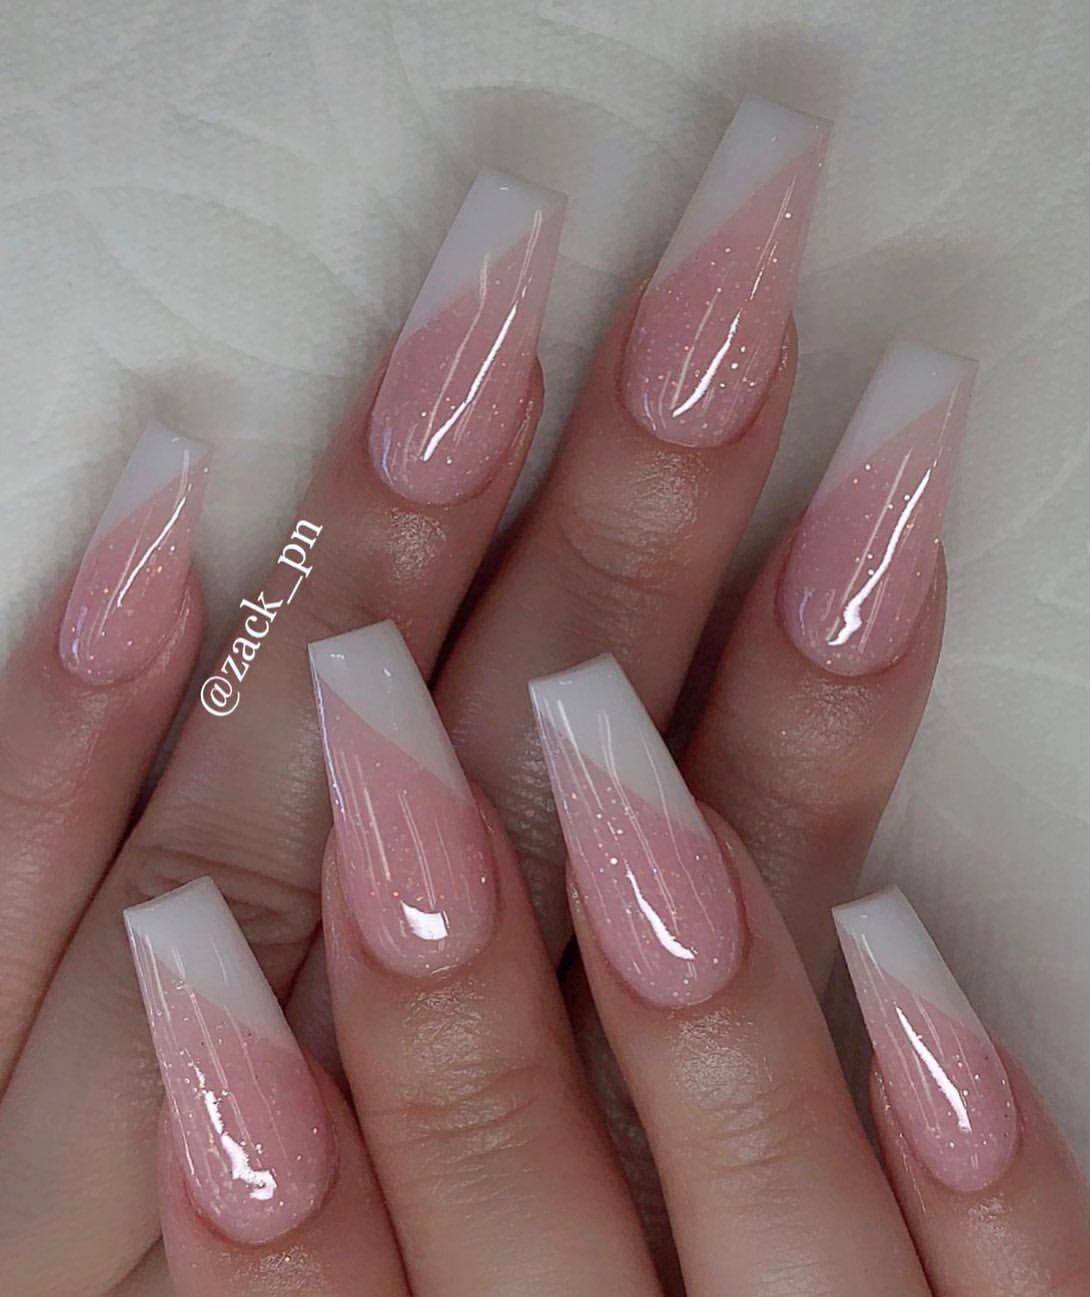 How To Do Gel Nails At Home In 2020 Gelove Nehty Akrylove Nehty Nehty